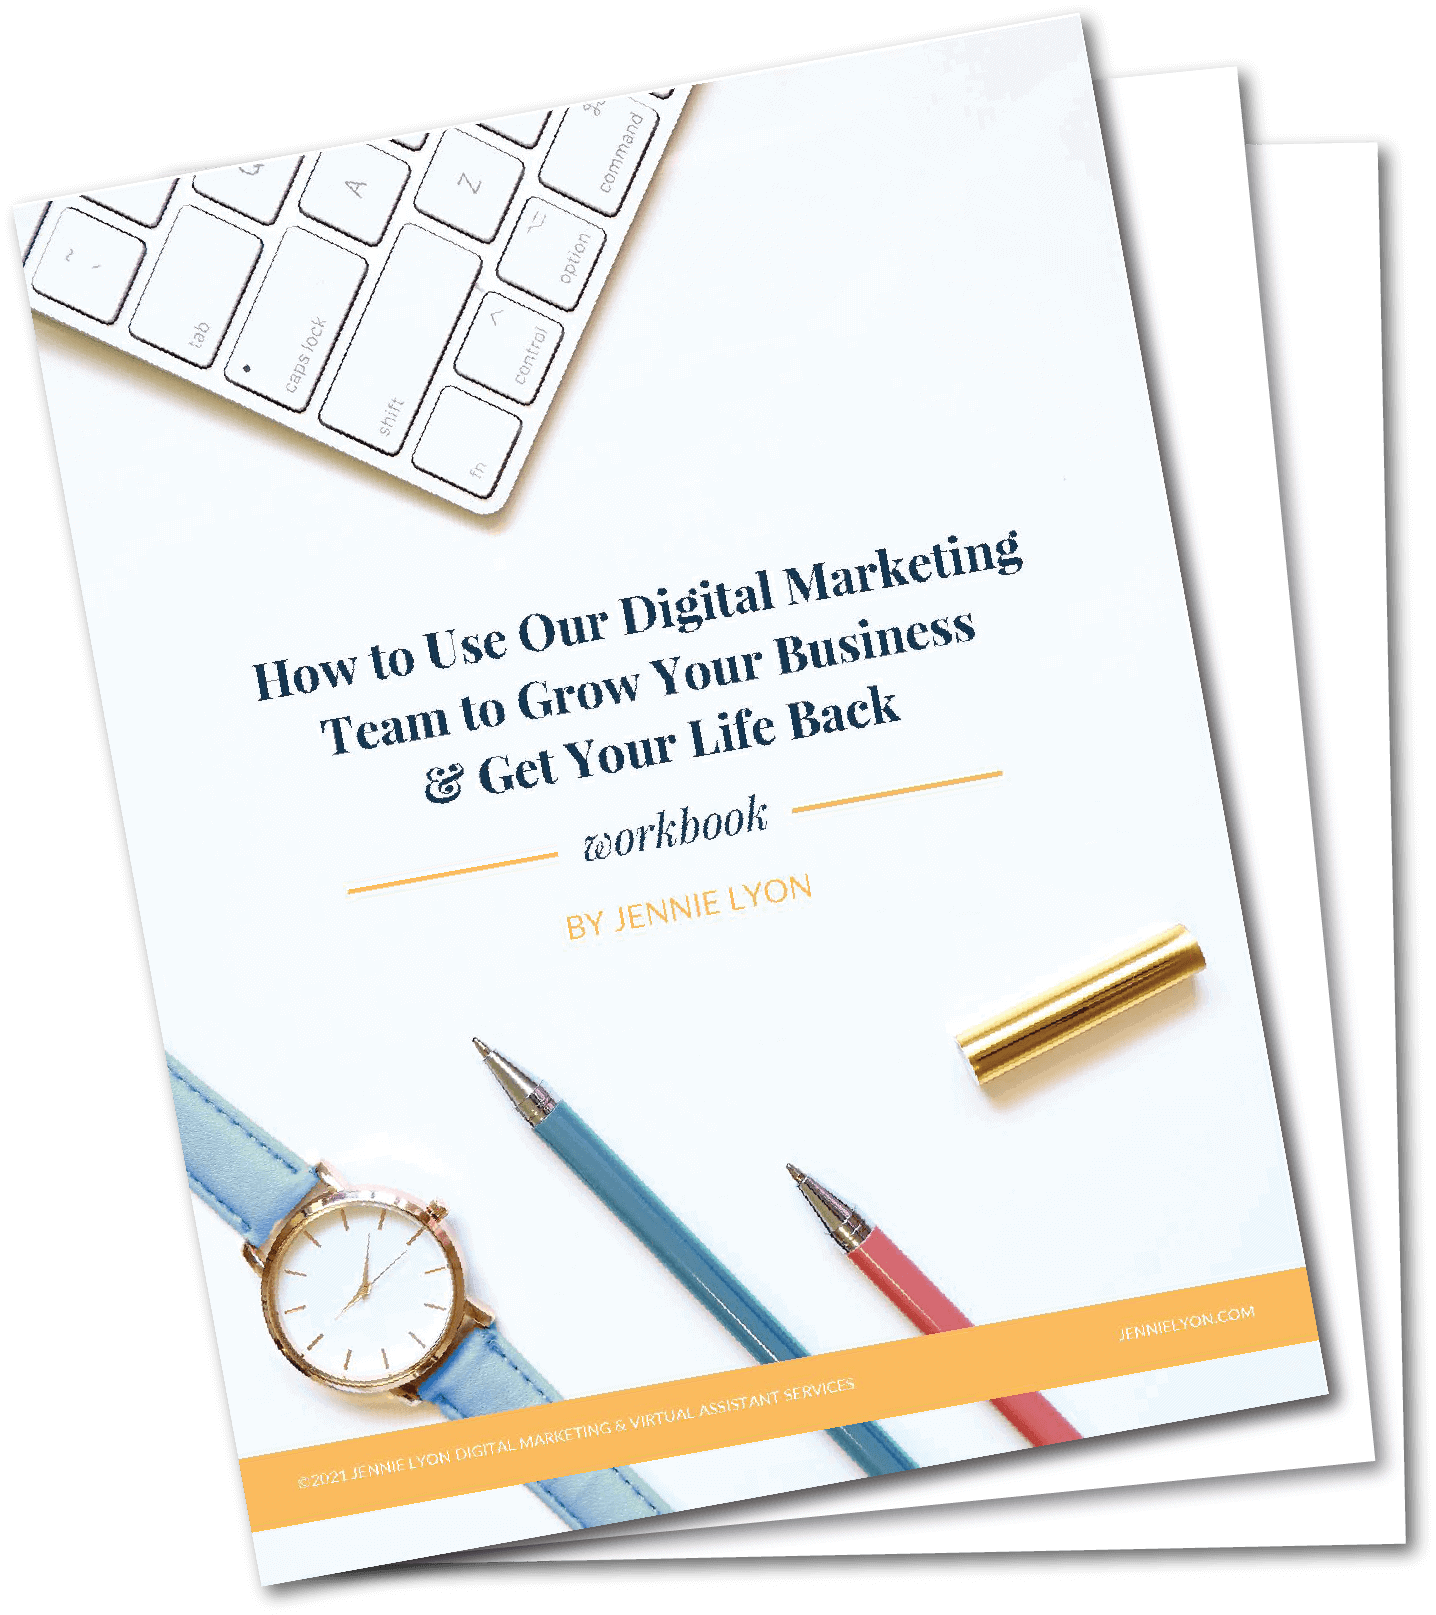 How to Use Our Digital Marketing Team to Grow Your Business Get Your Life Back